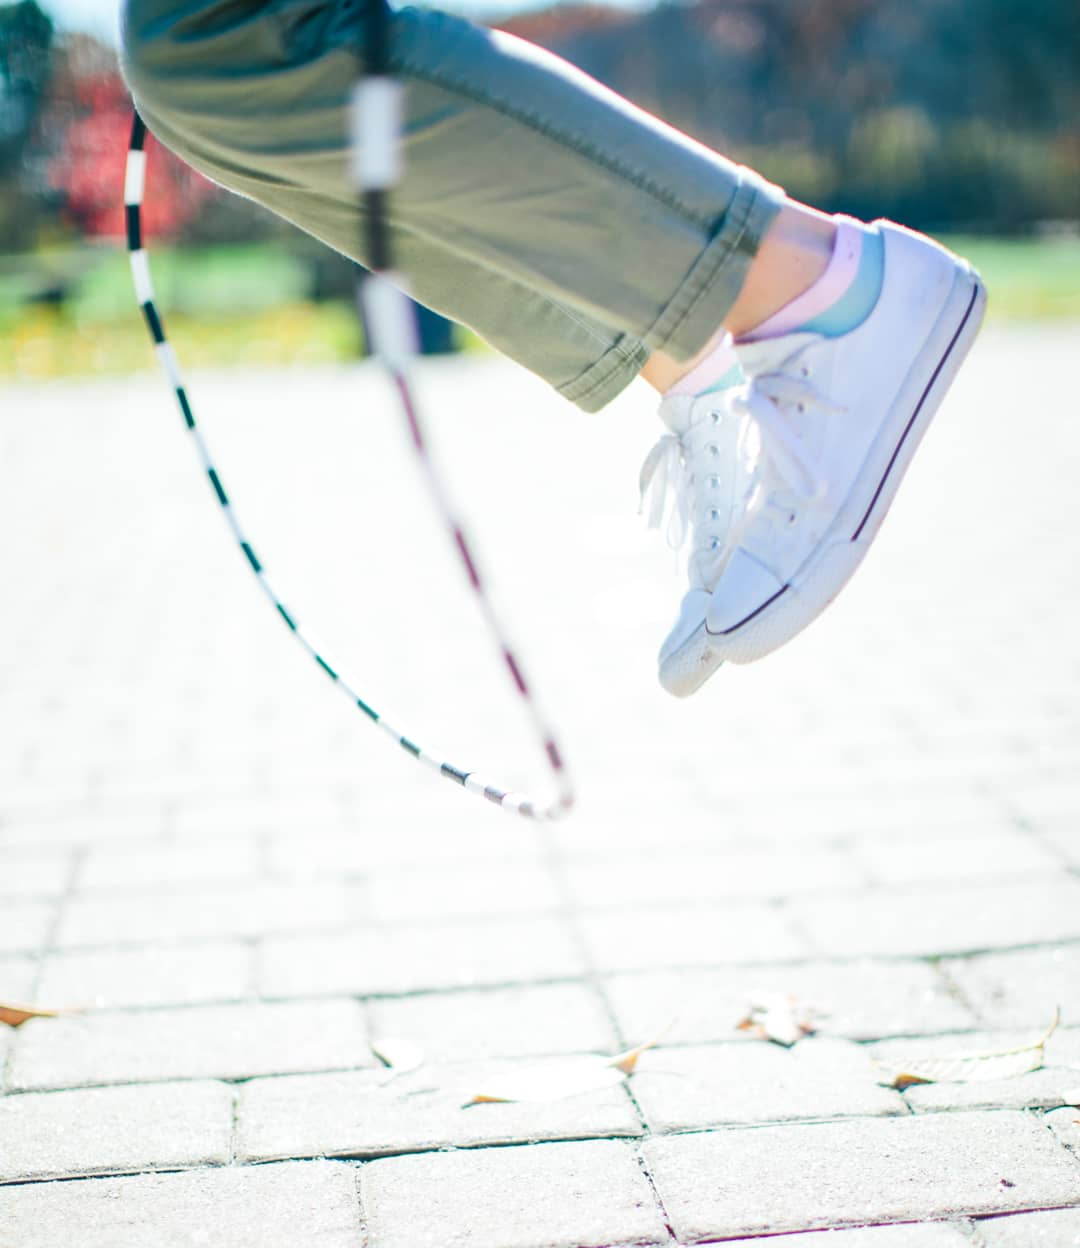 Student's feet while mid-jump over rope